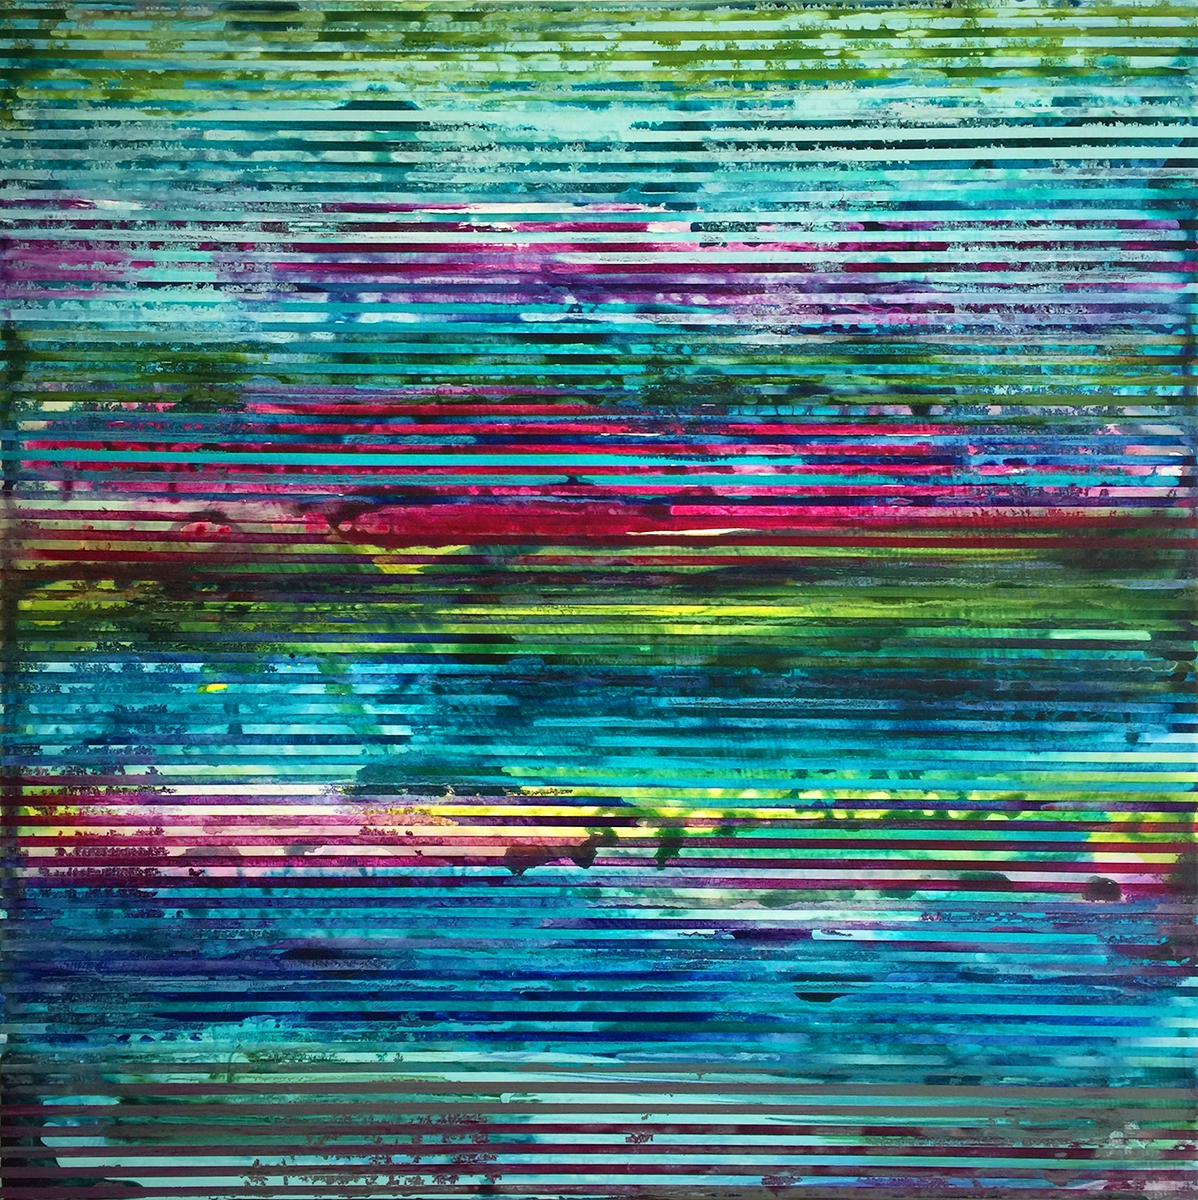 Weaving Landscape (square 2) 2 by Shawn Skeir